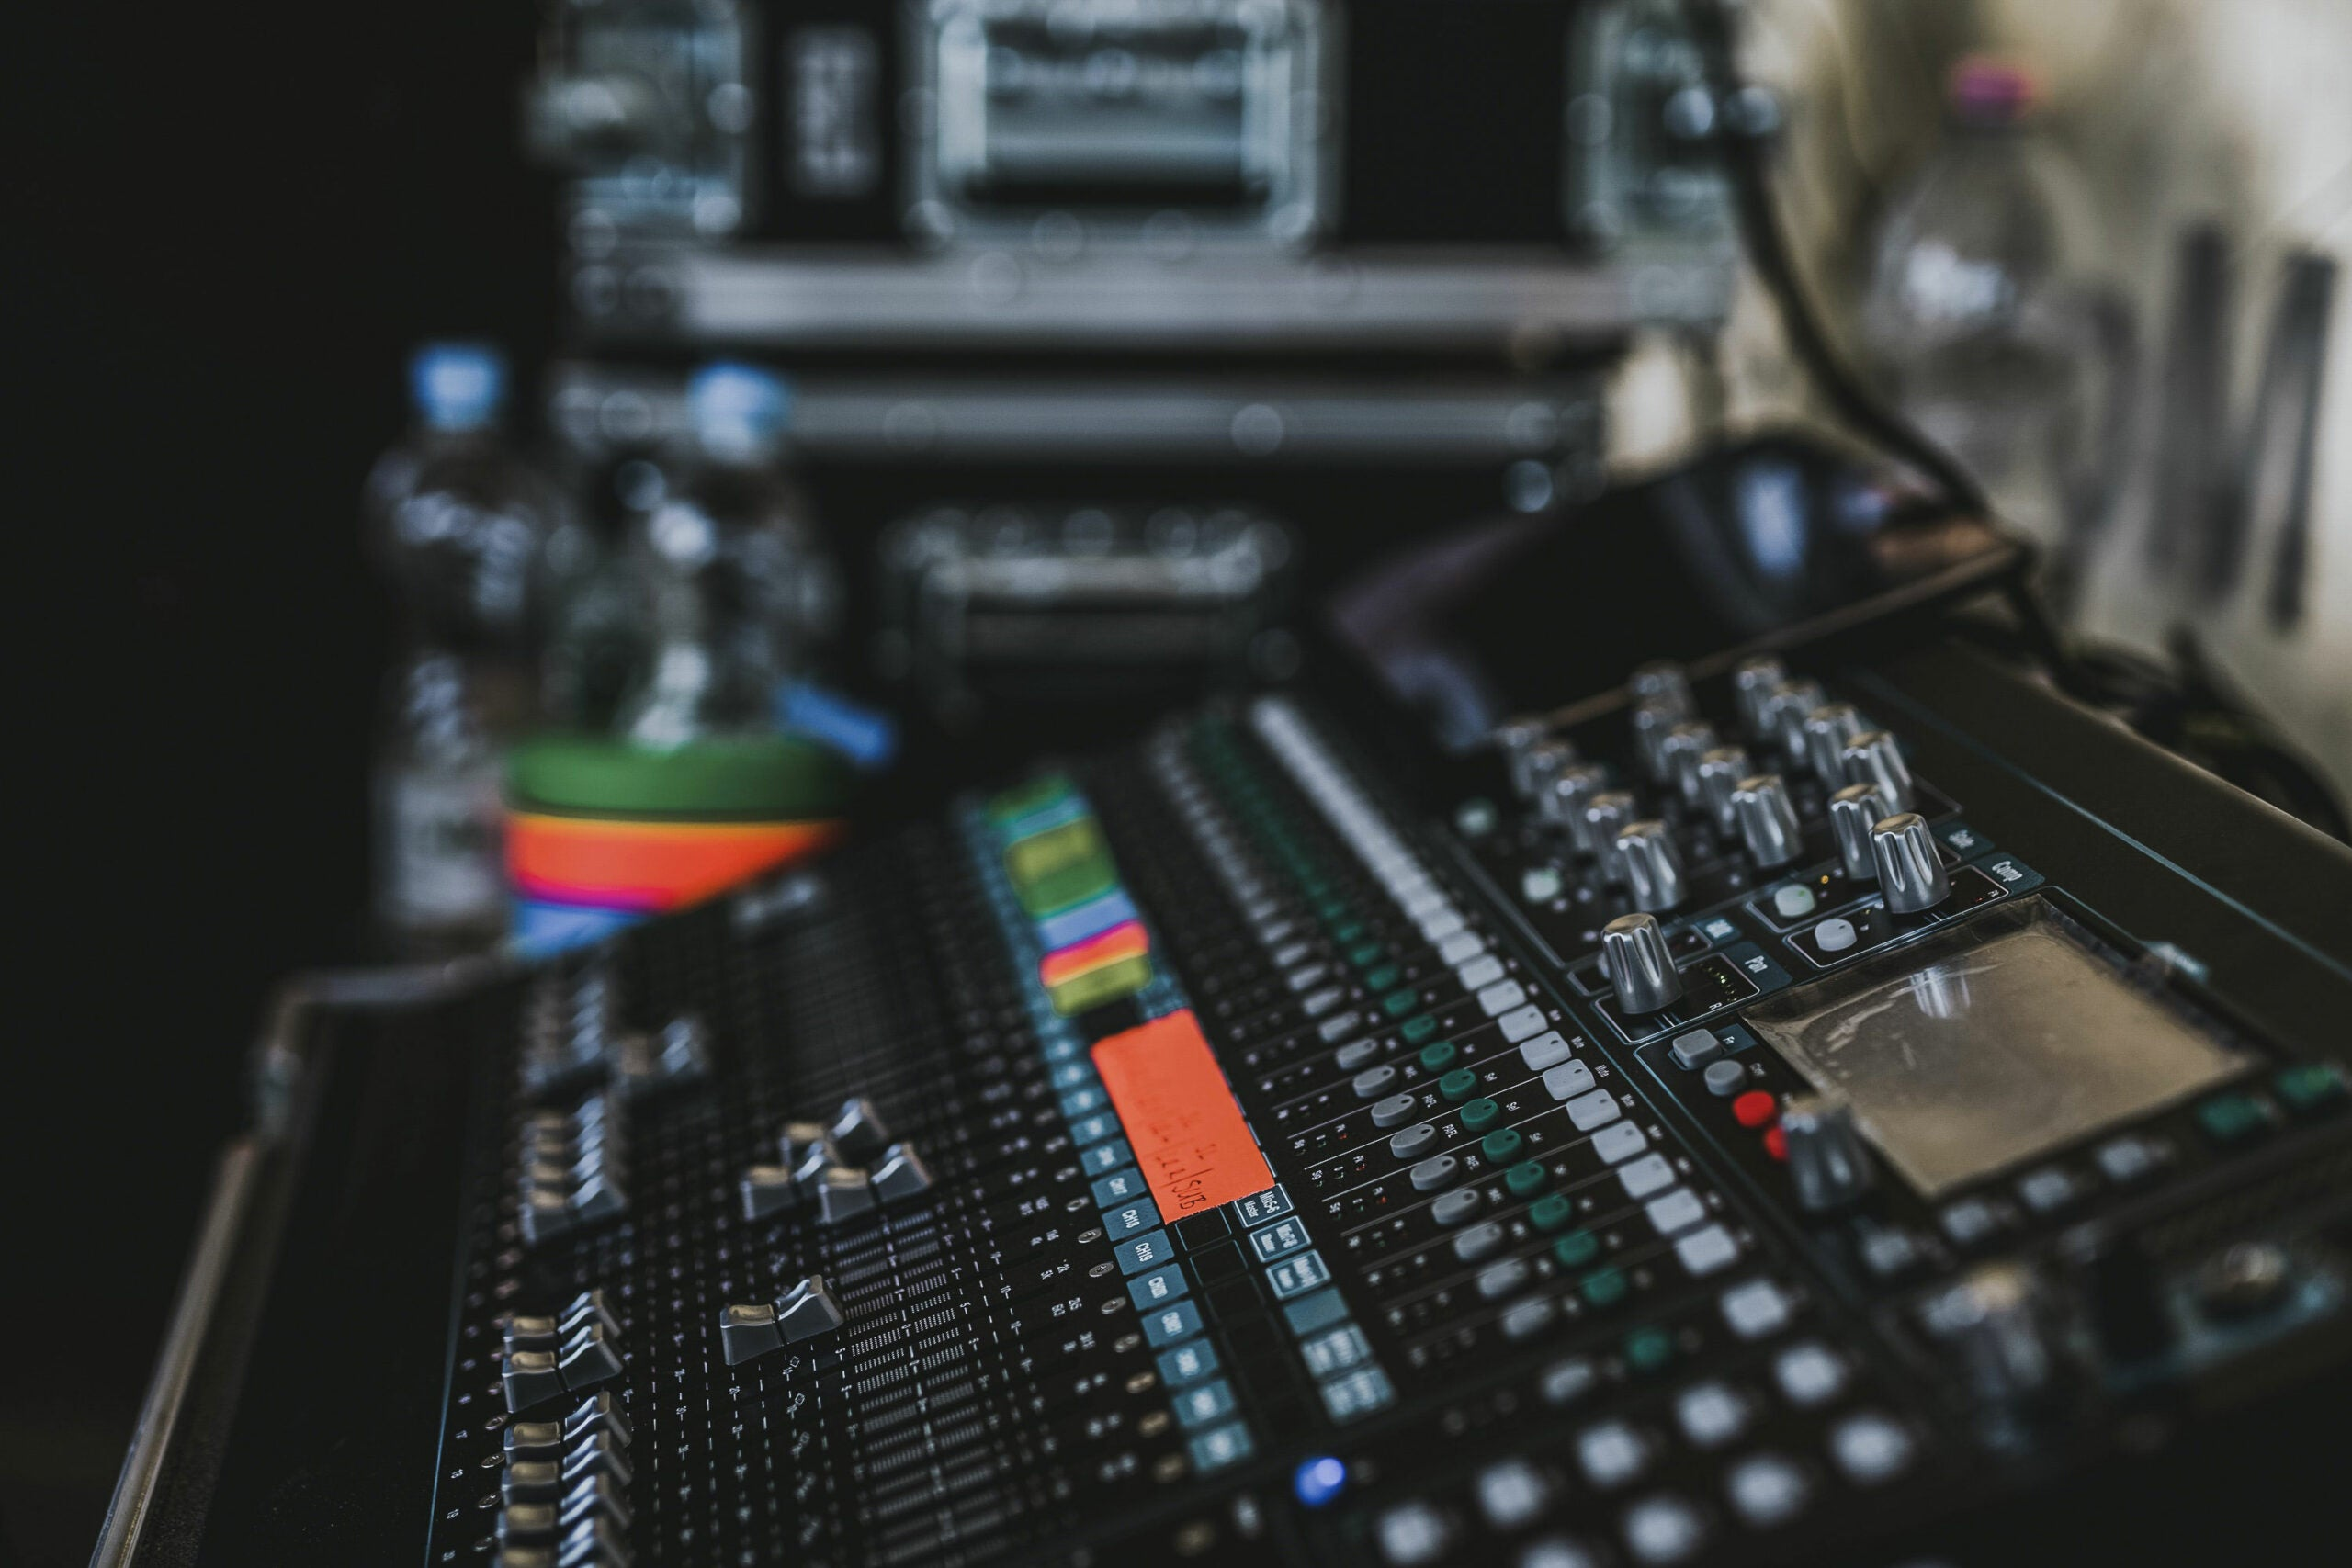 Three keys to consider when buying a sound mixer